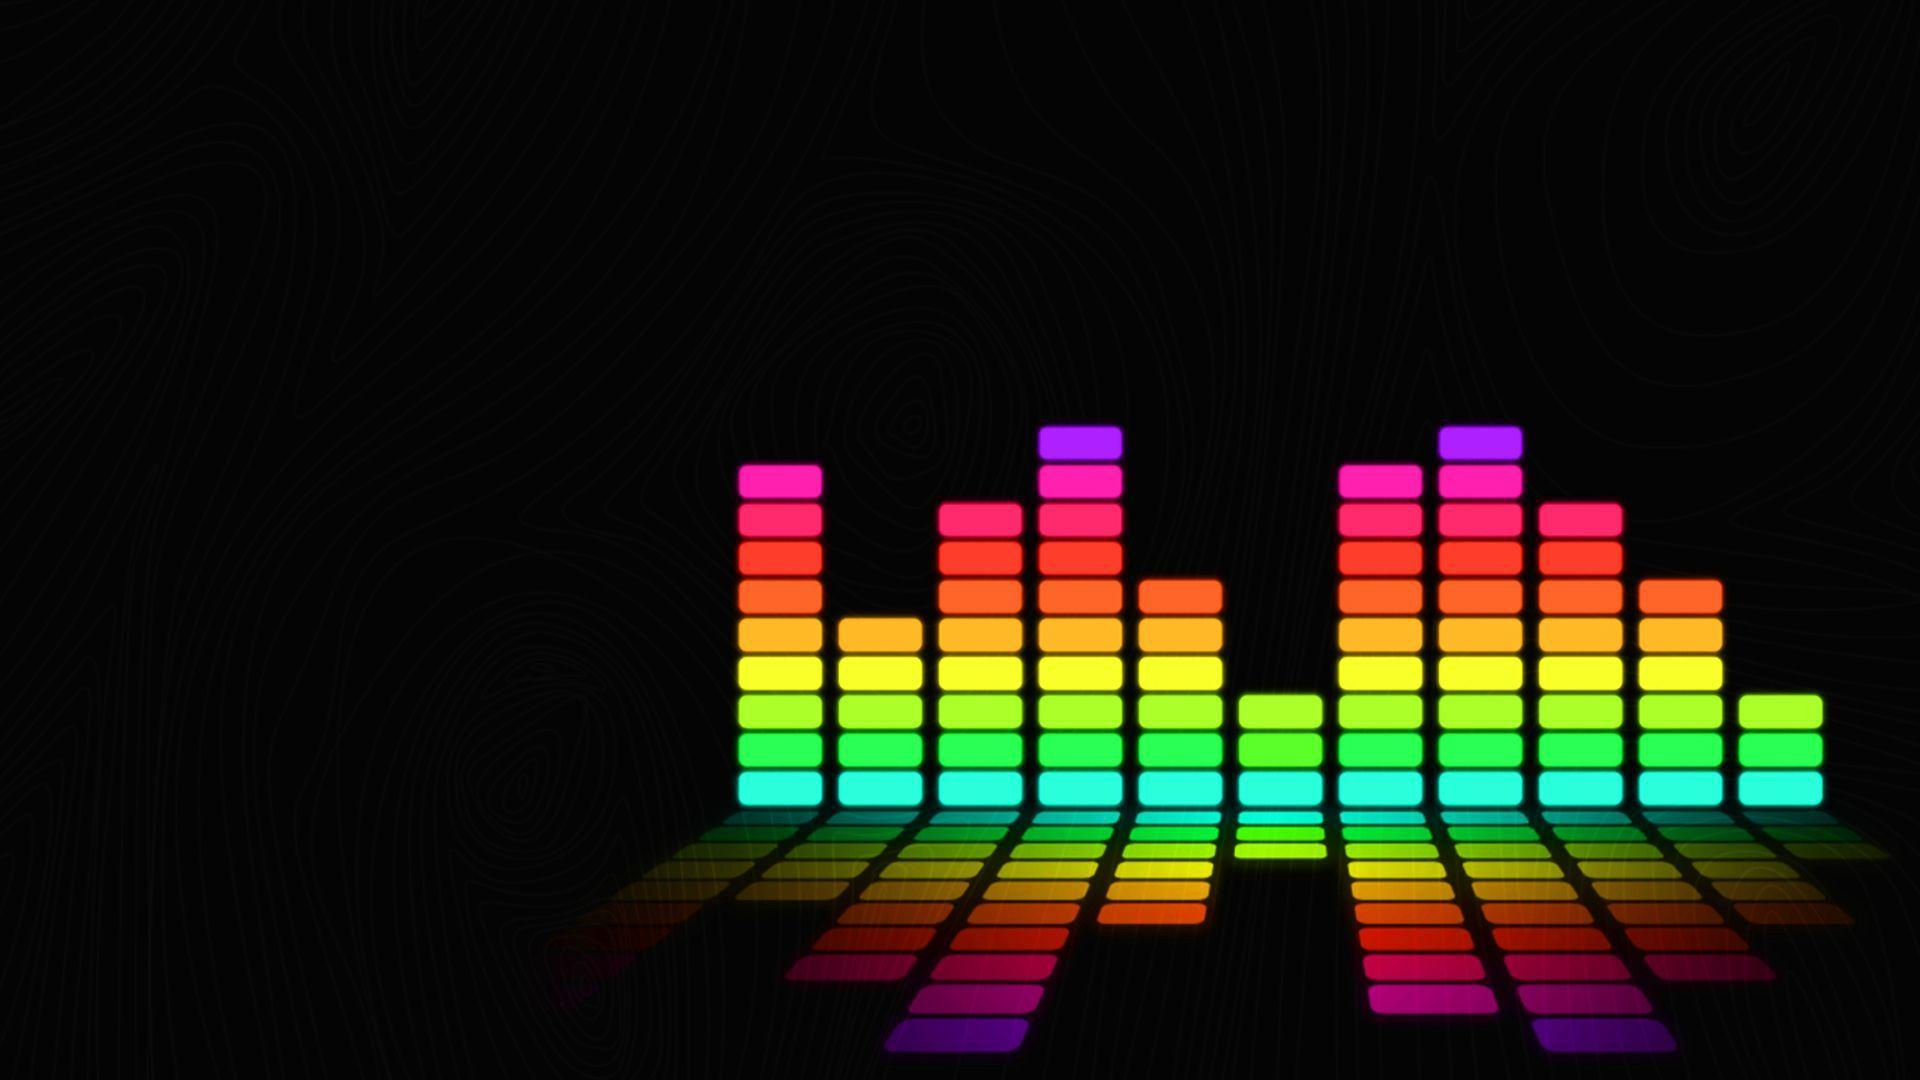 House Music Wallpapers